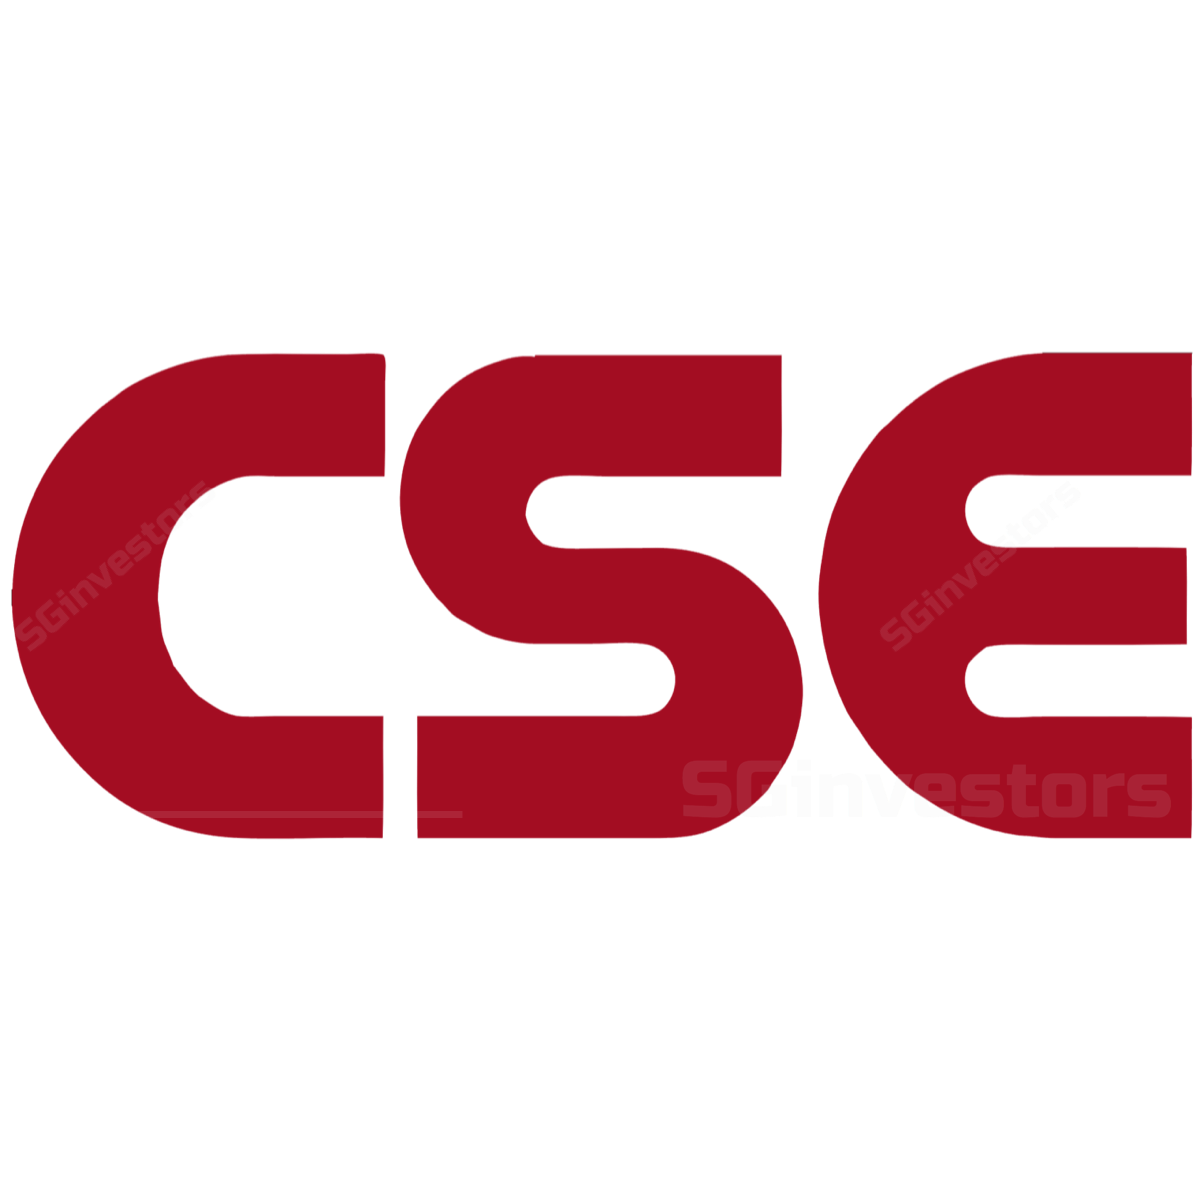 CSE Global - CIMB Research 2018-04-16: Ushering In New Dynamic; Await Synergies To Re-rate